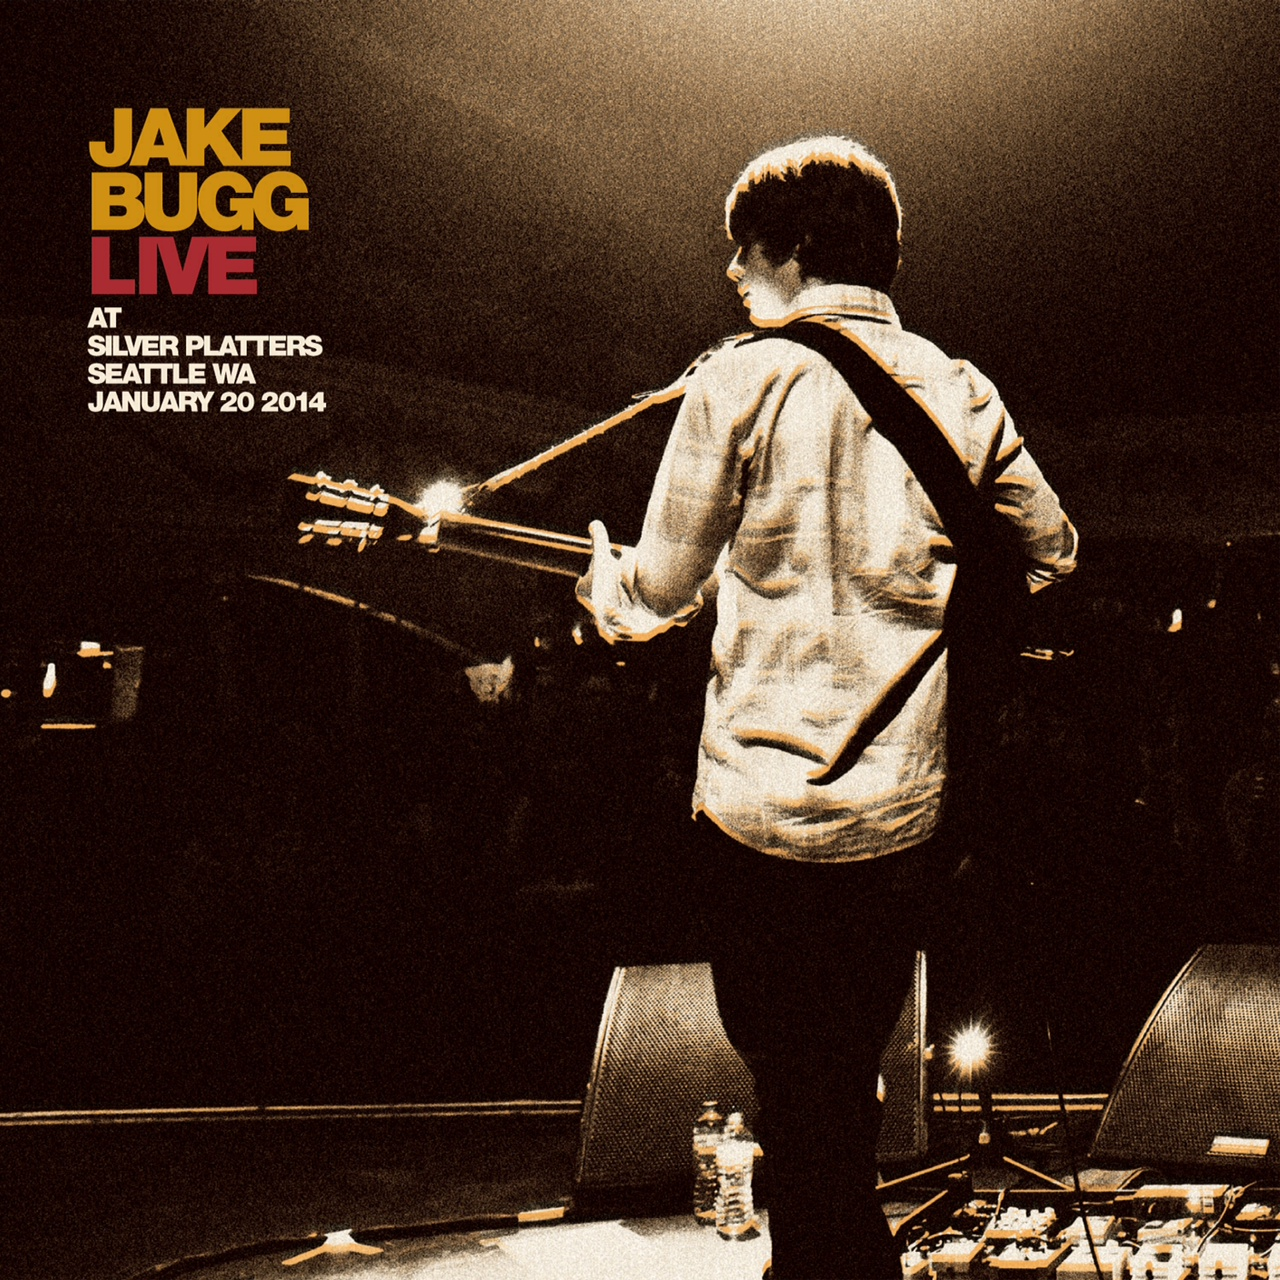 Jake Bugg - Live @ Silver Platters Seattle Wa January 20 2014